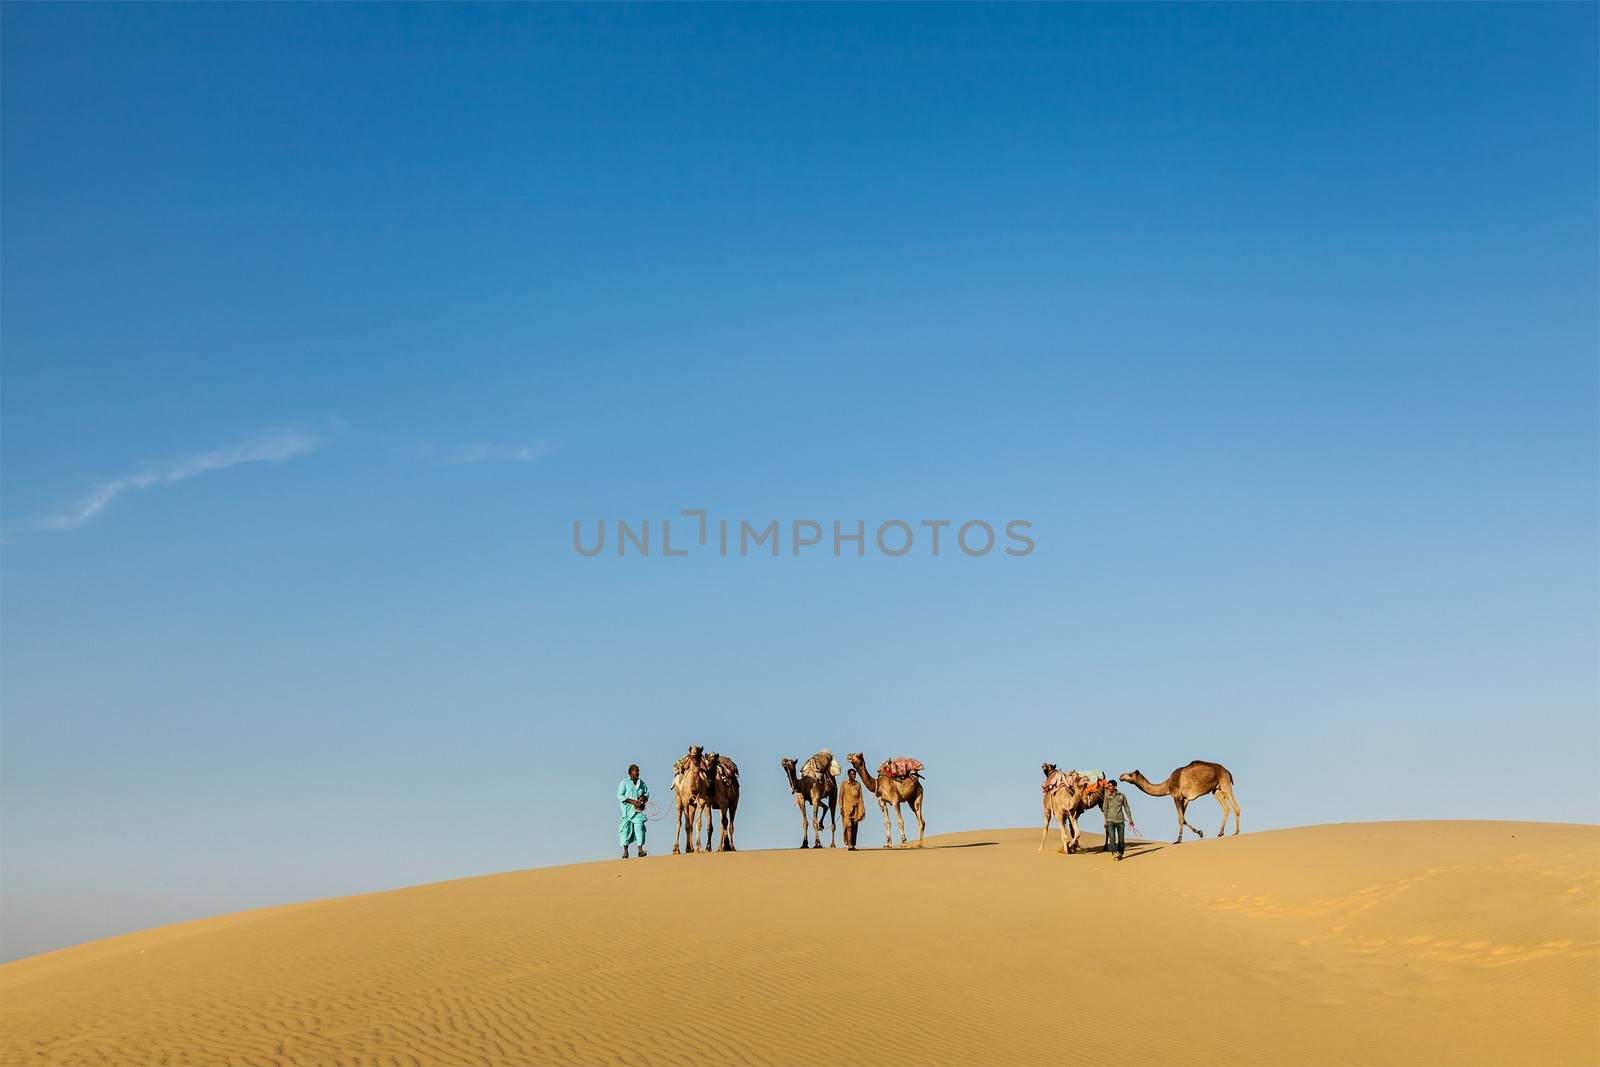 Rajasthan travel background - Three cameleers (camel drivers) with camels in dunes of Thar desert. Jaisalmer, Rajasthan, India